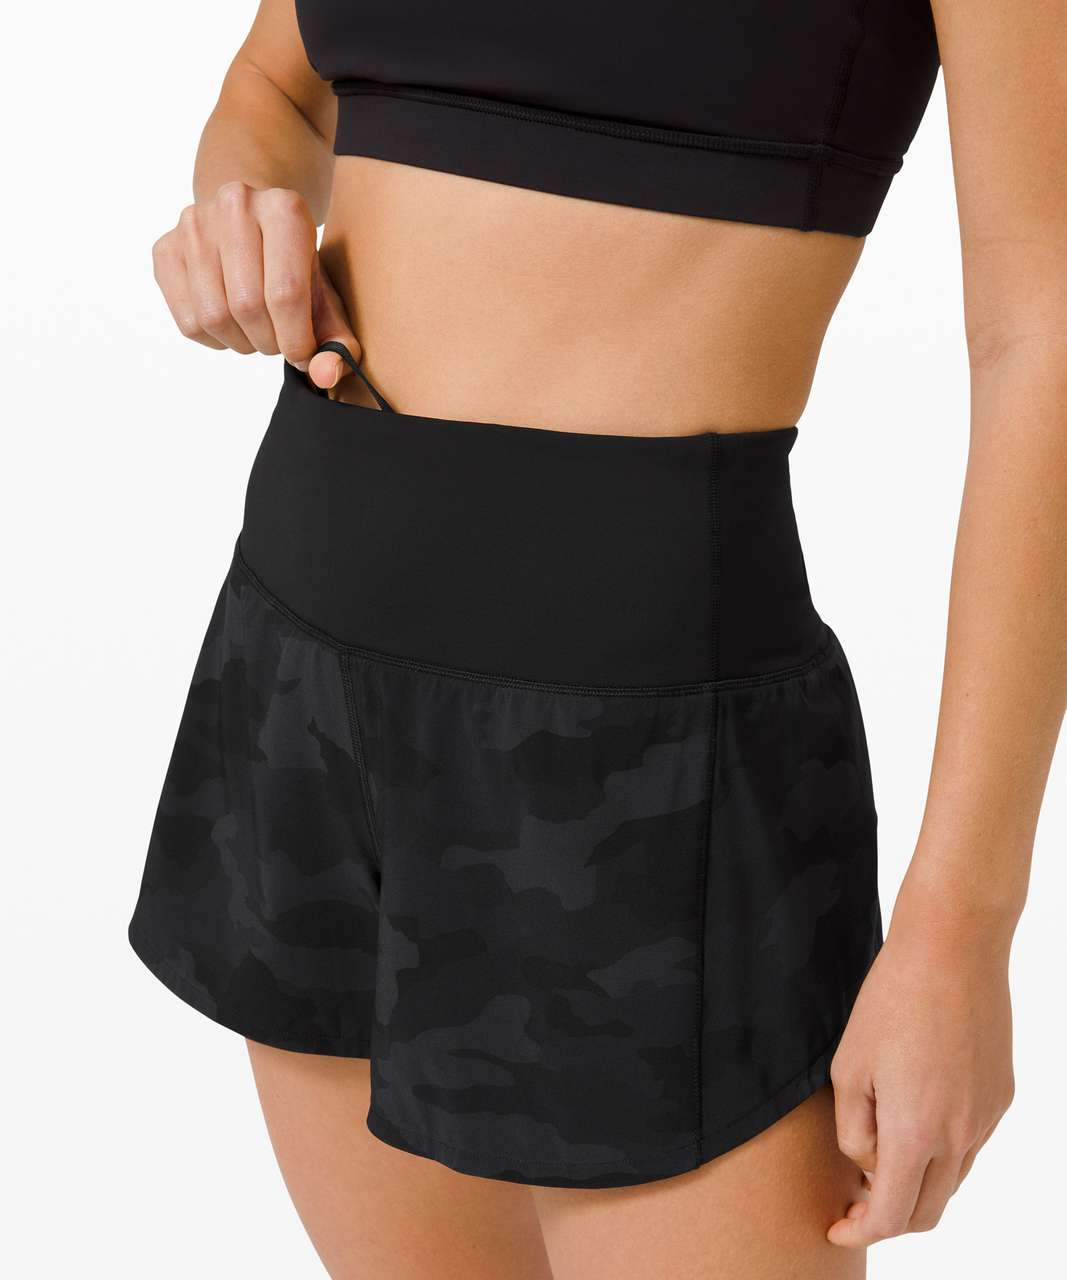 "Lululemon Speed Up High-Rise Short 4"" *Long - Heritage 365 Camo Deep Coal Multi / Black"